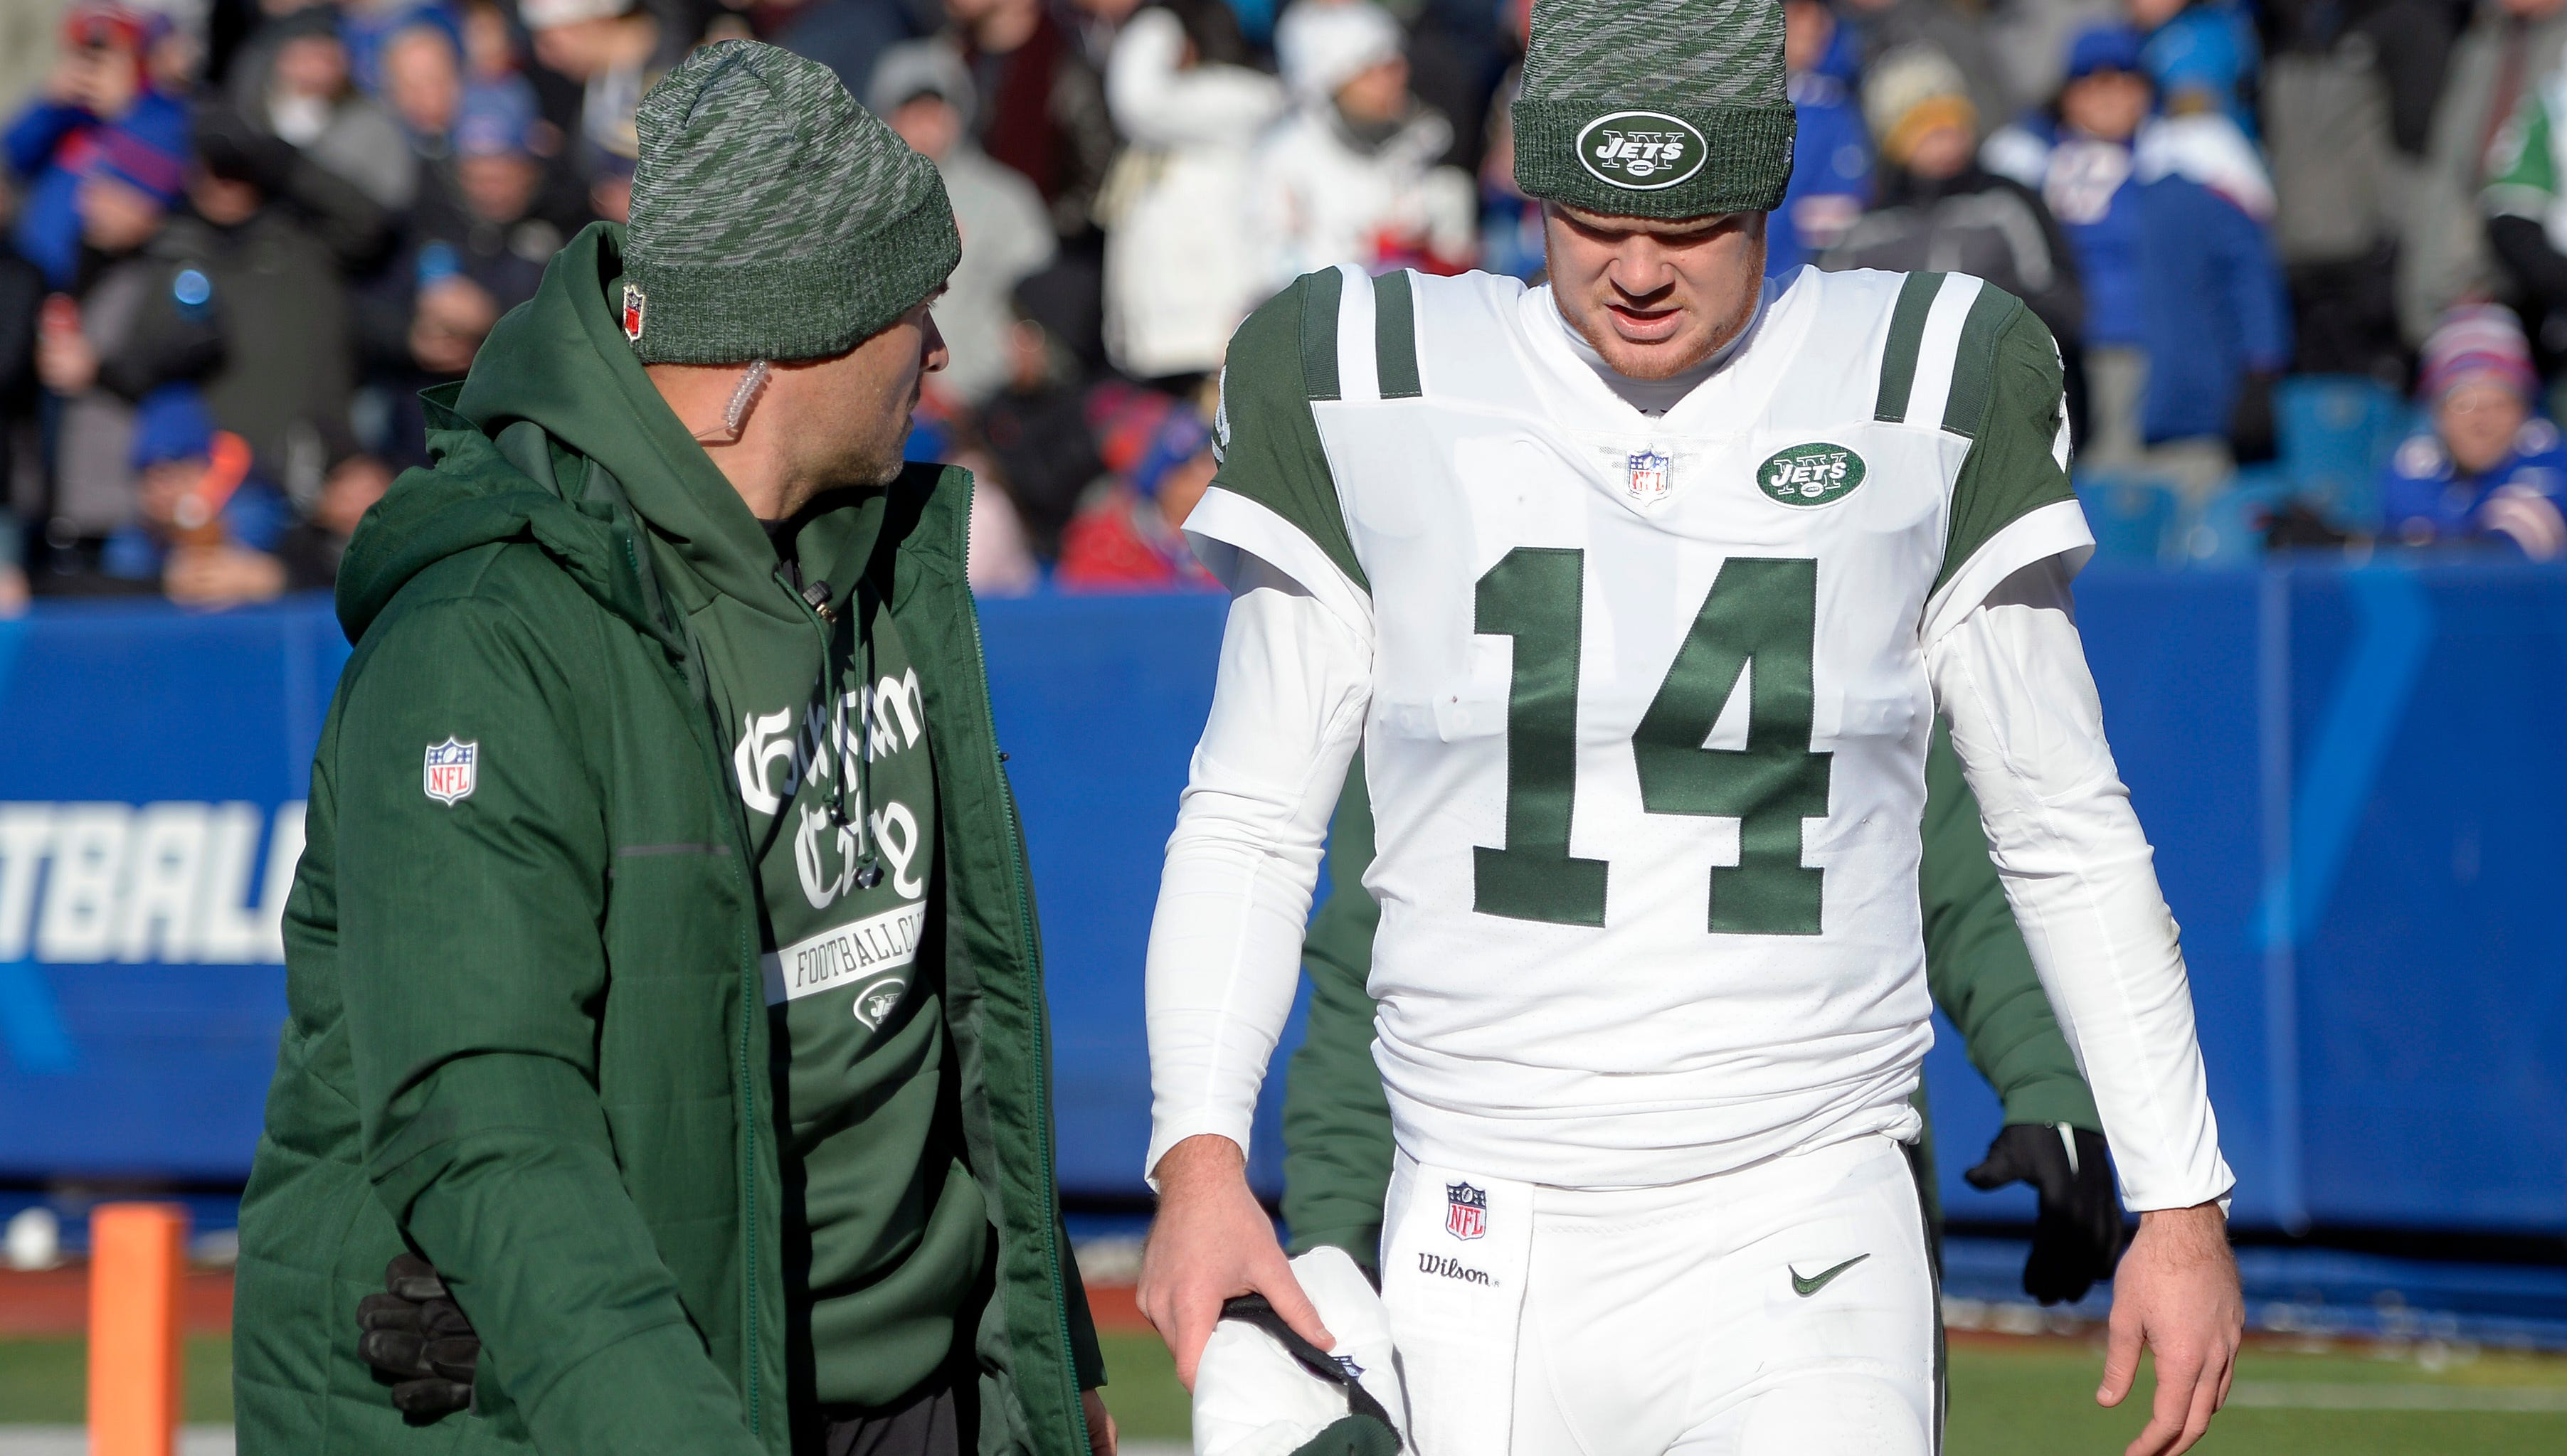 Bills-Jets injury updates: LeSean McCoy downgraded to out; Sam Darnold returns